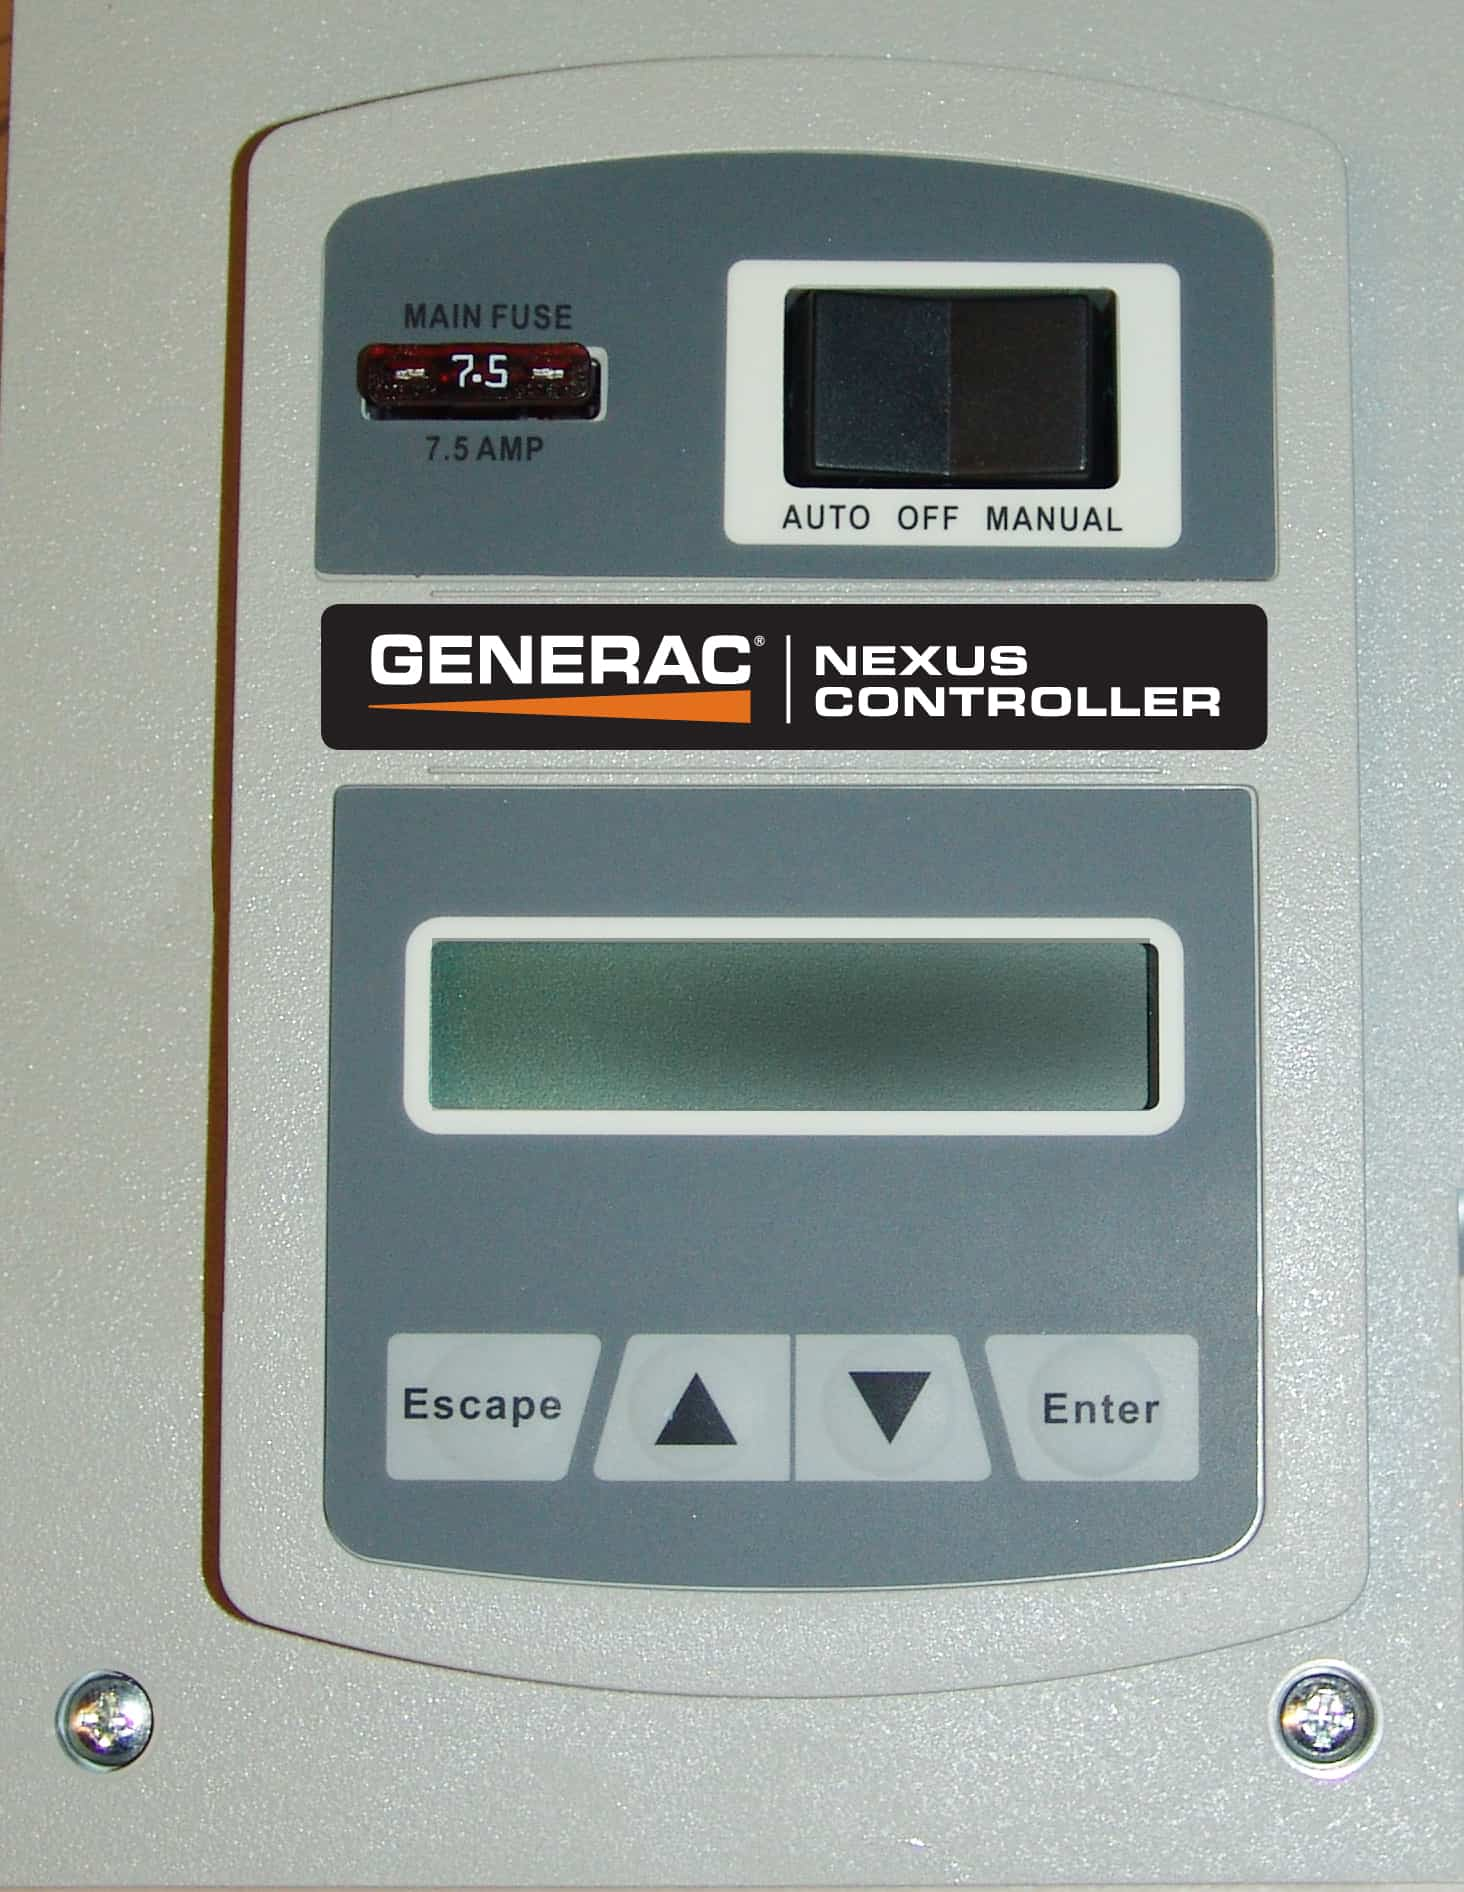 the generac nexus controller rh norwall com Wire 2 Generac Start Generac Nexus Controller Manual